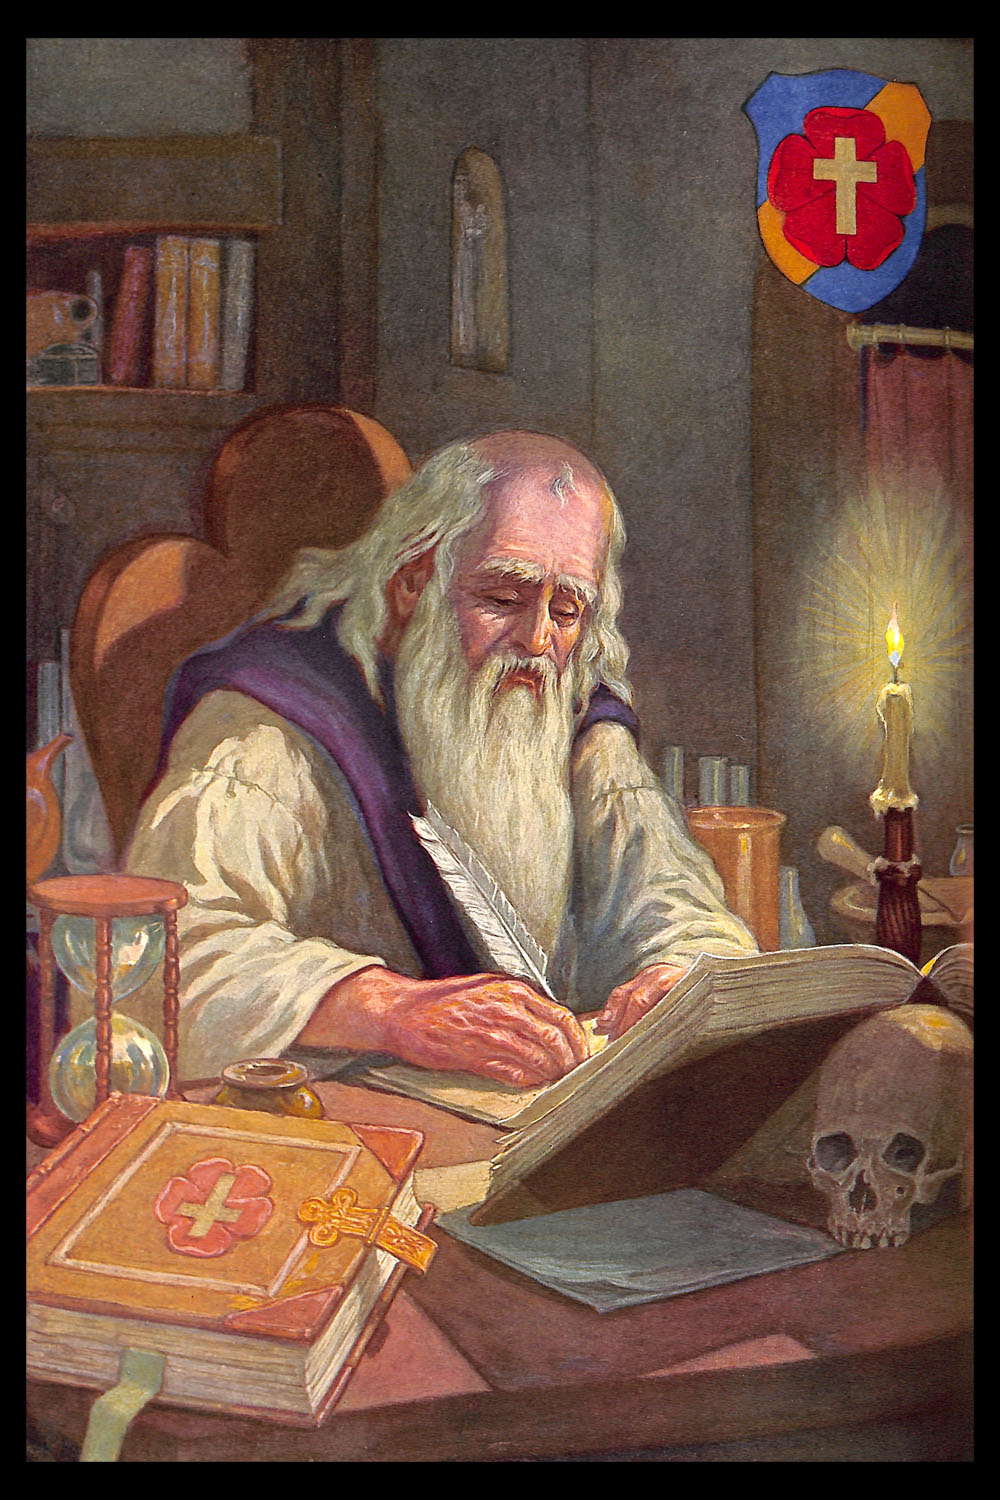 The Rosicrucian Philospher